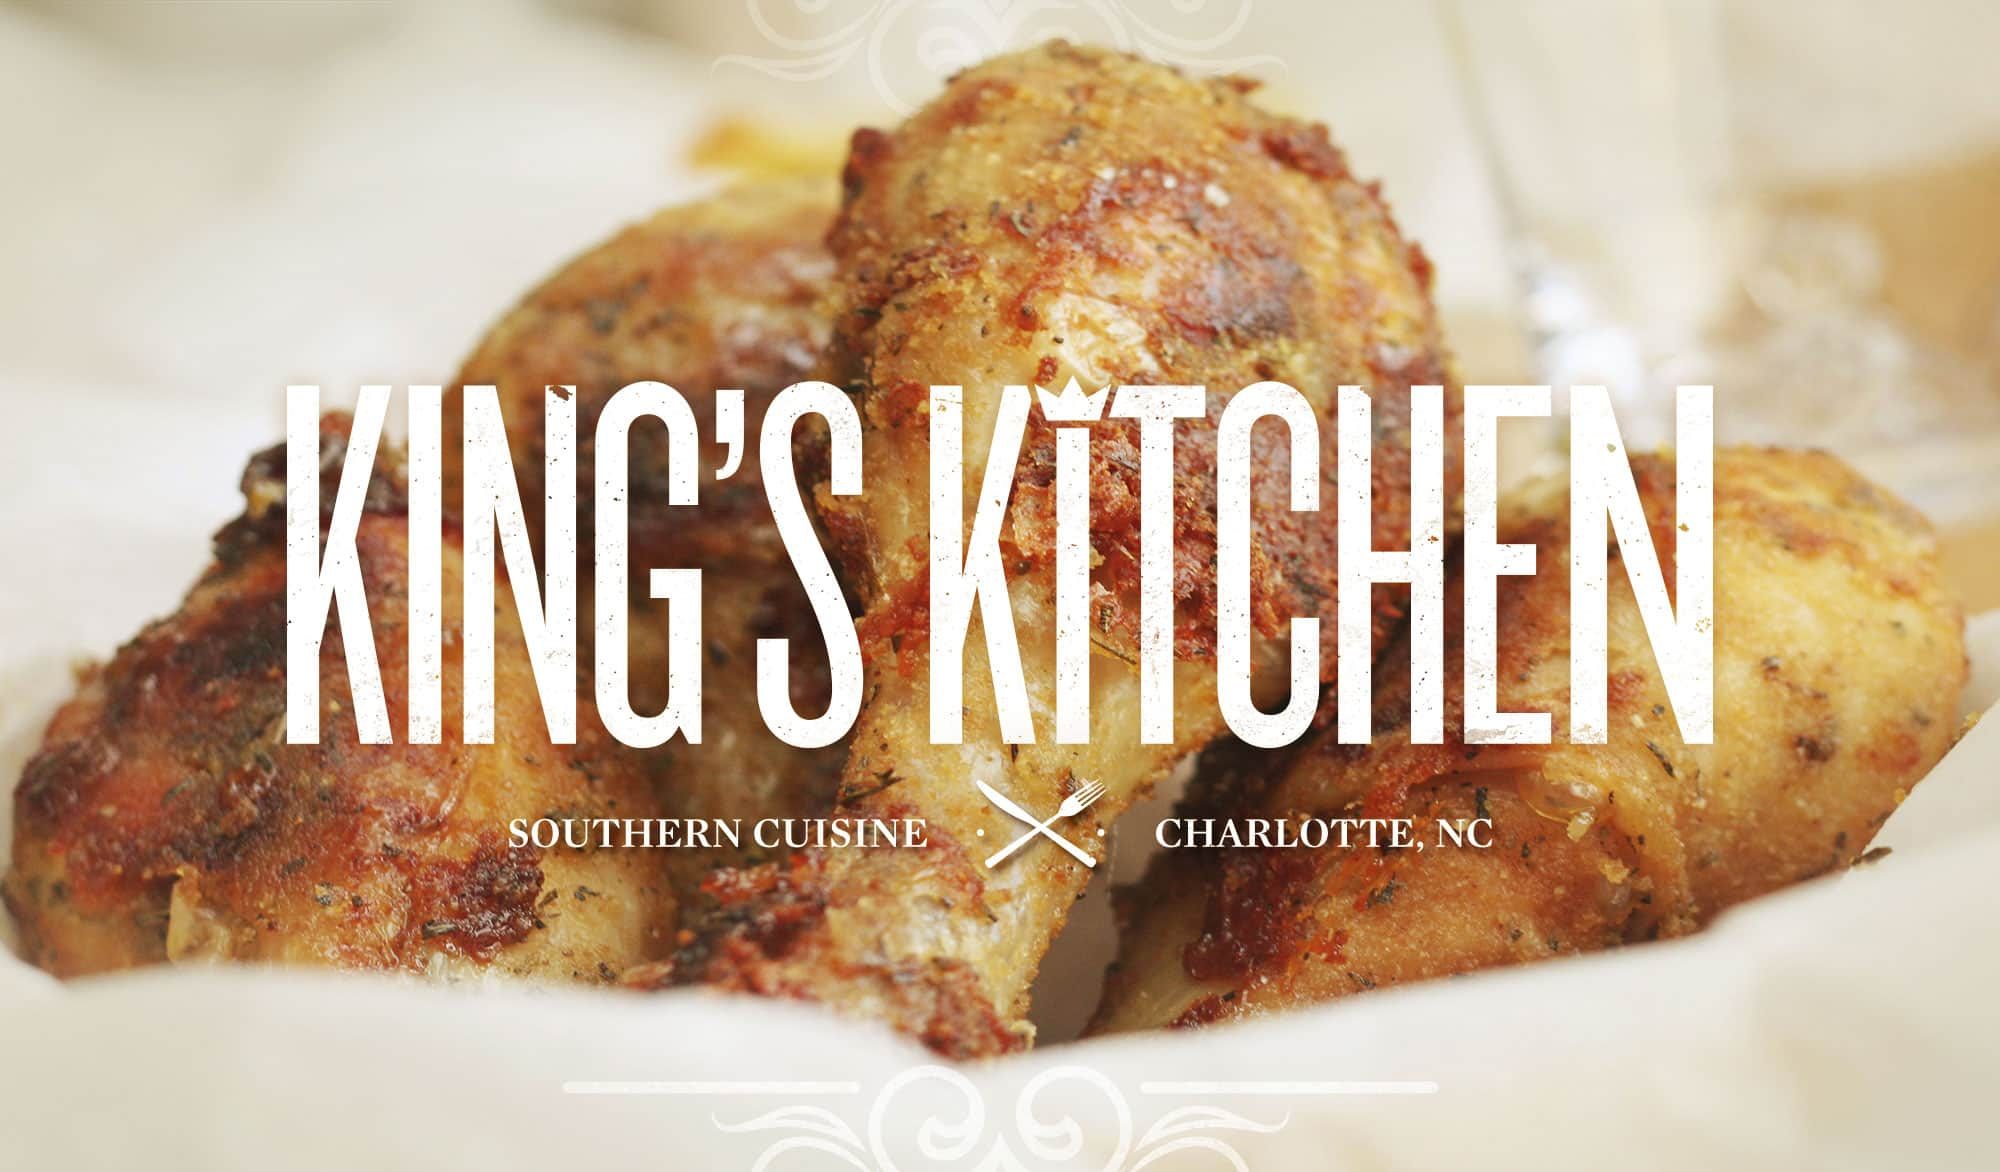 AMERICAN CITY BUSINESS JOURNALS – King's Kitchen gives hand up, not hand out.